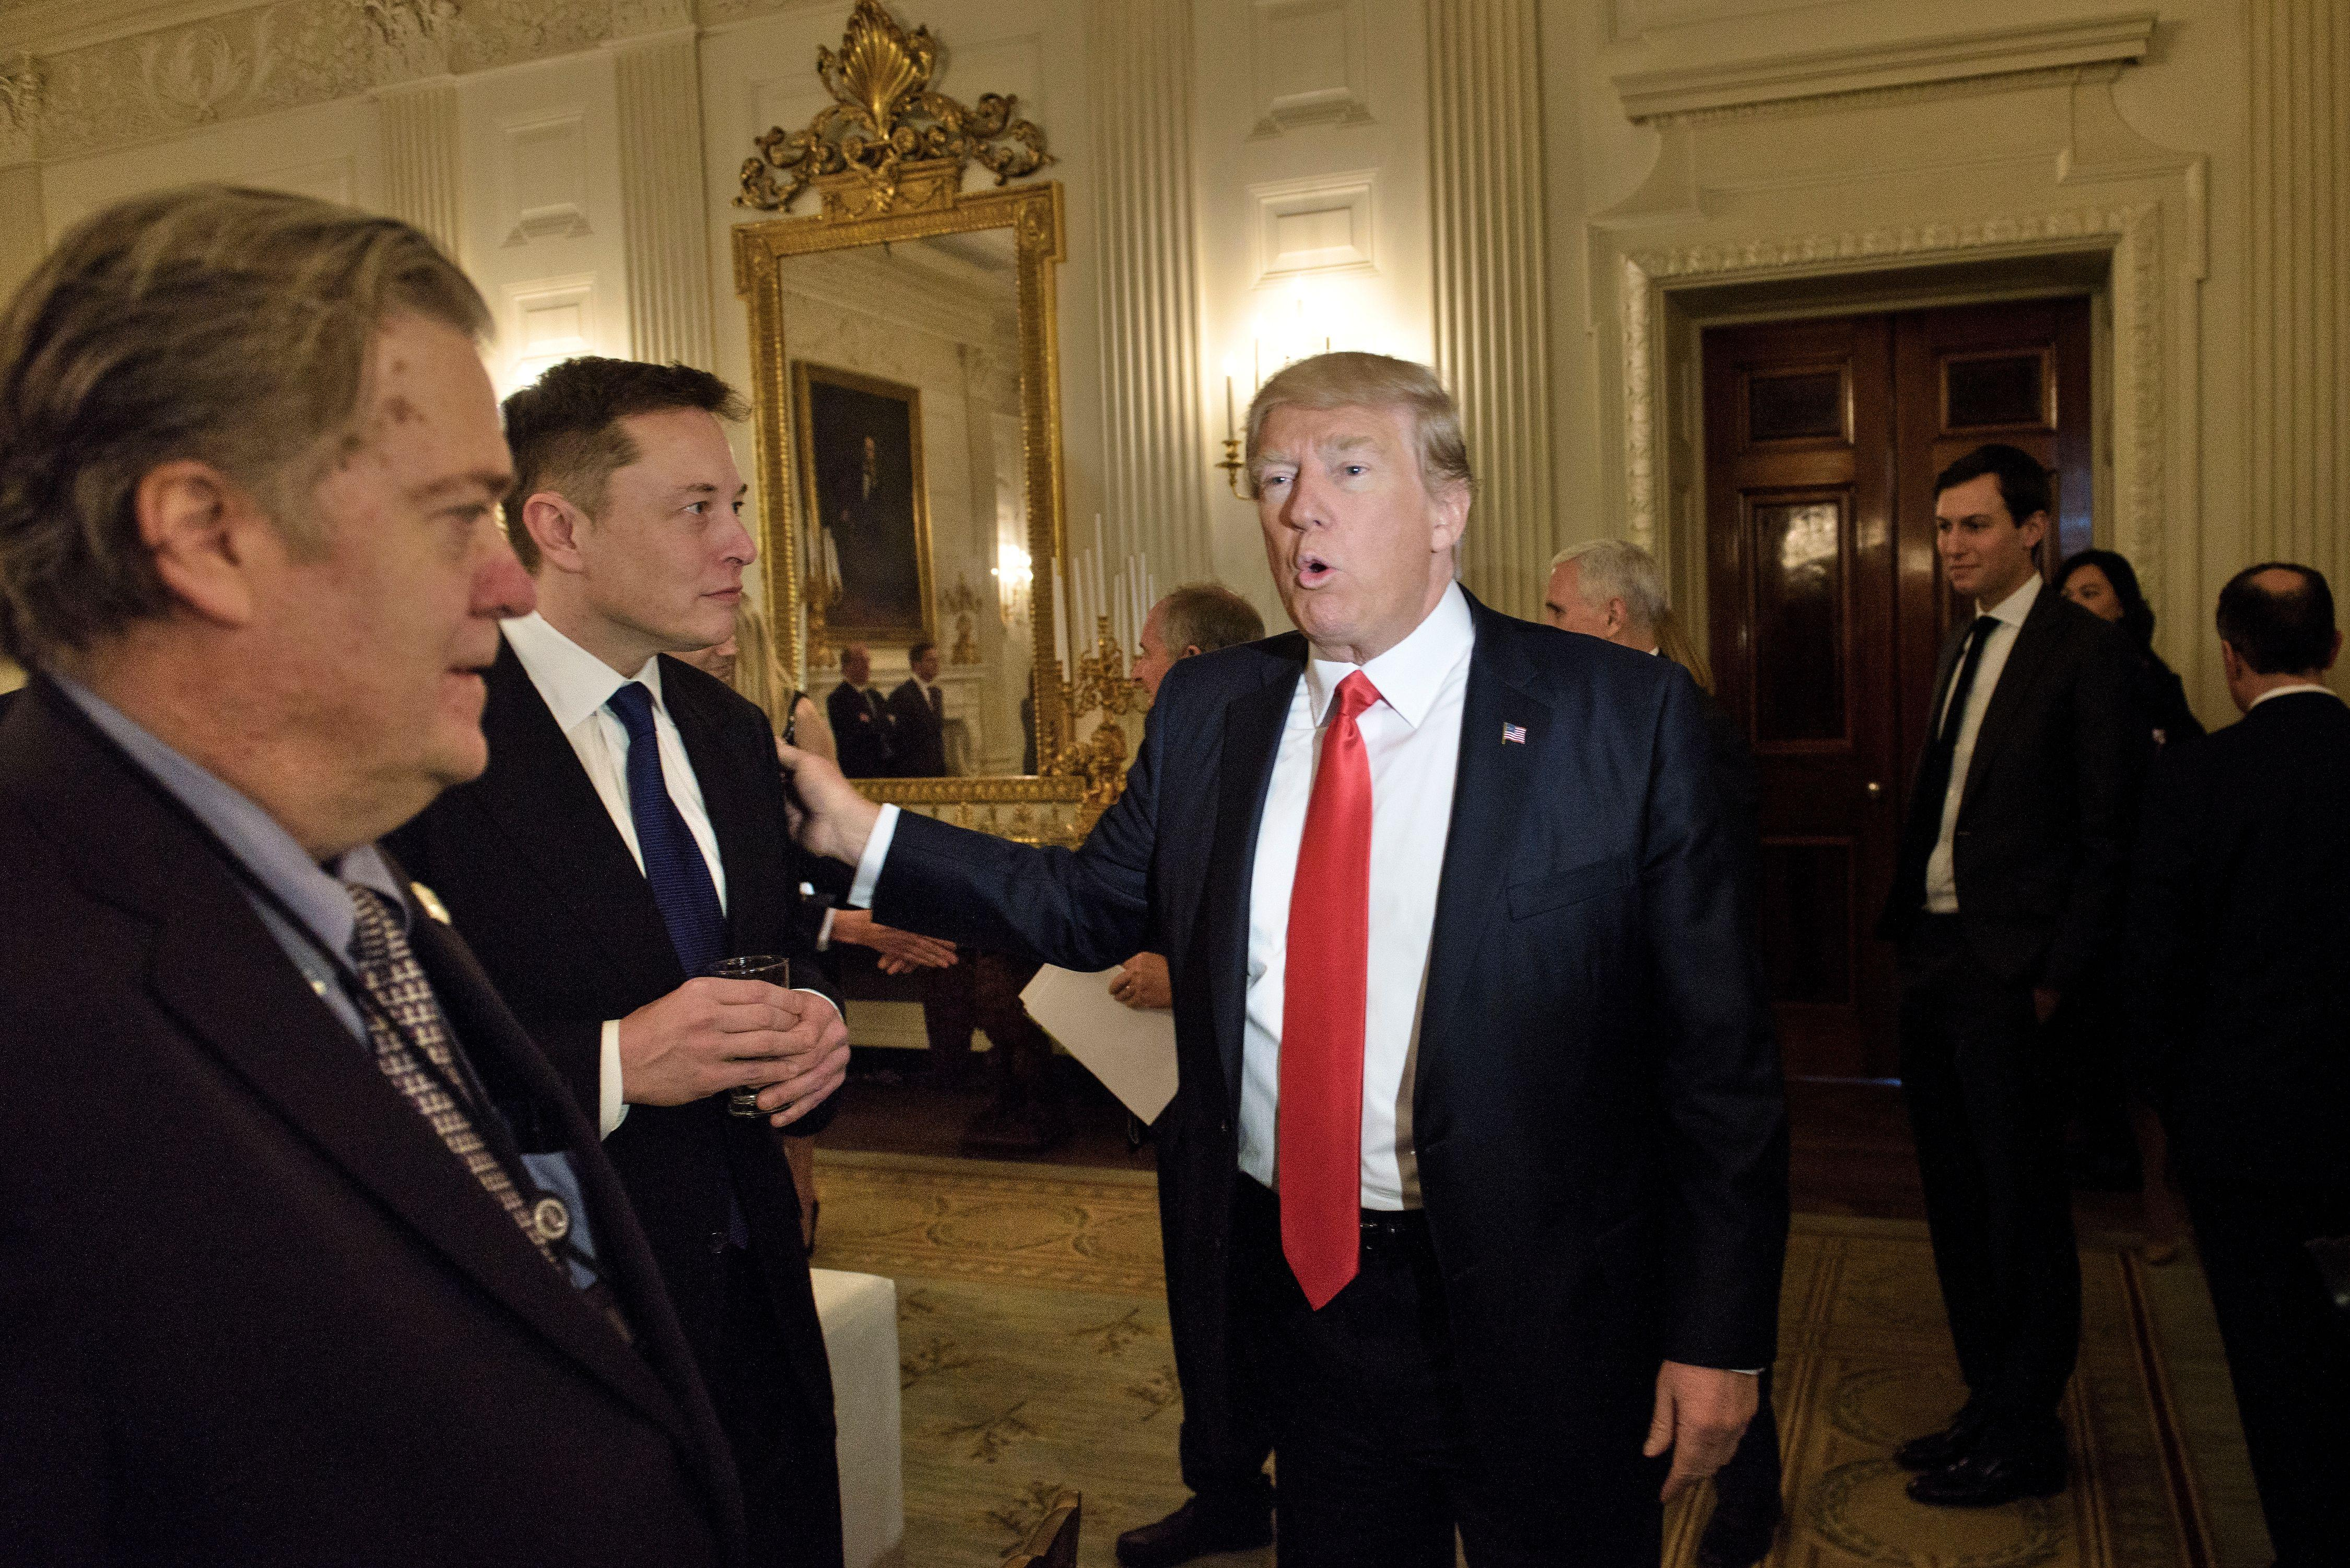 President Donald Trump meets with Tesla CEO Elon Musk at the White House.